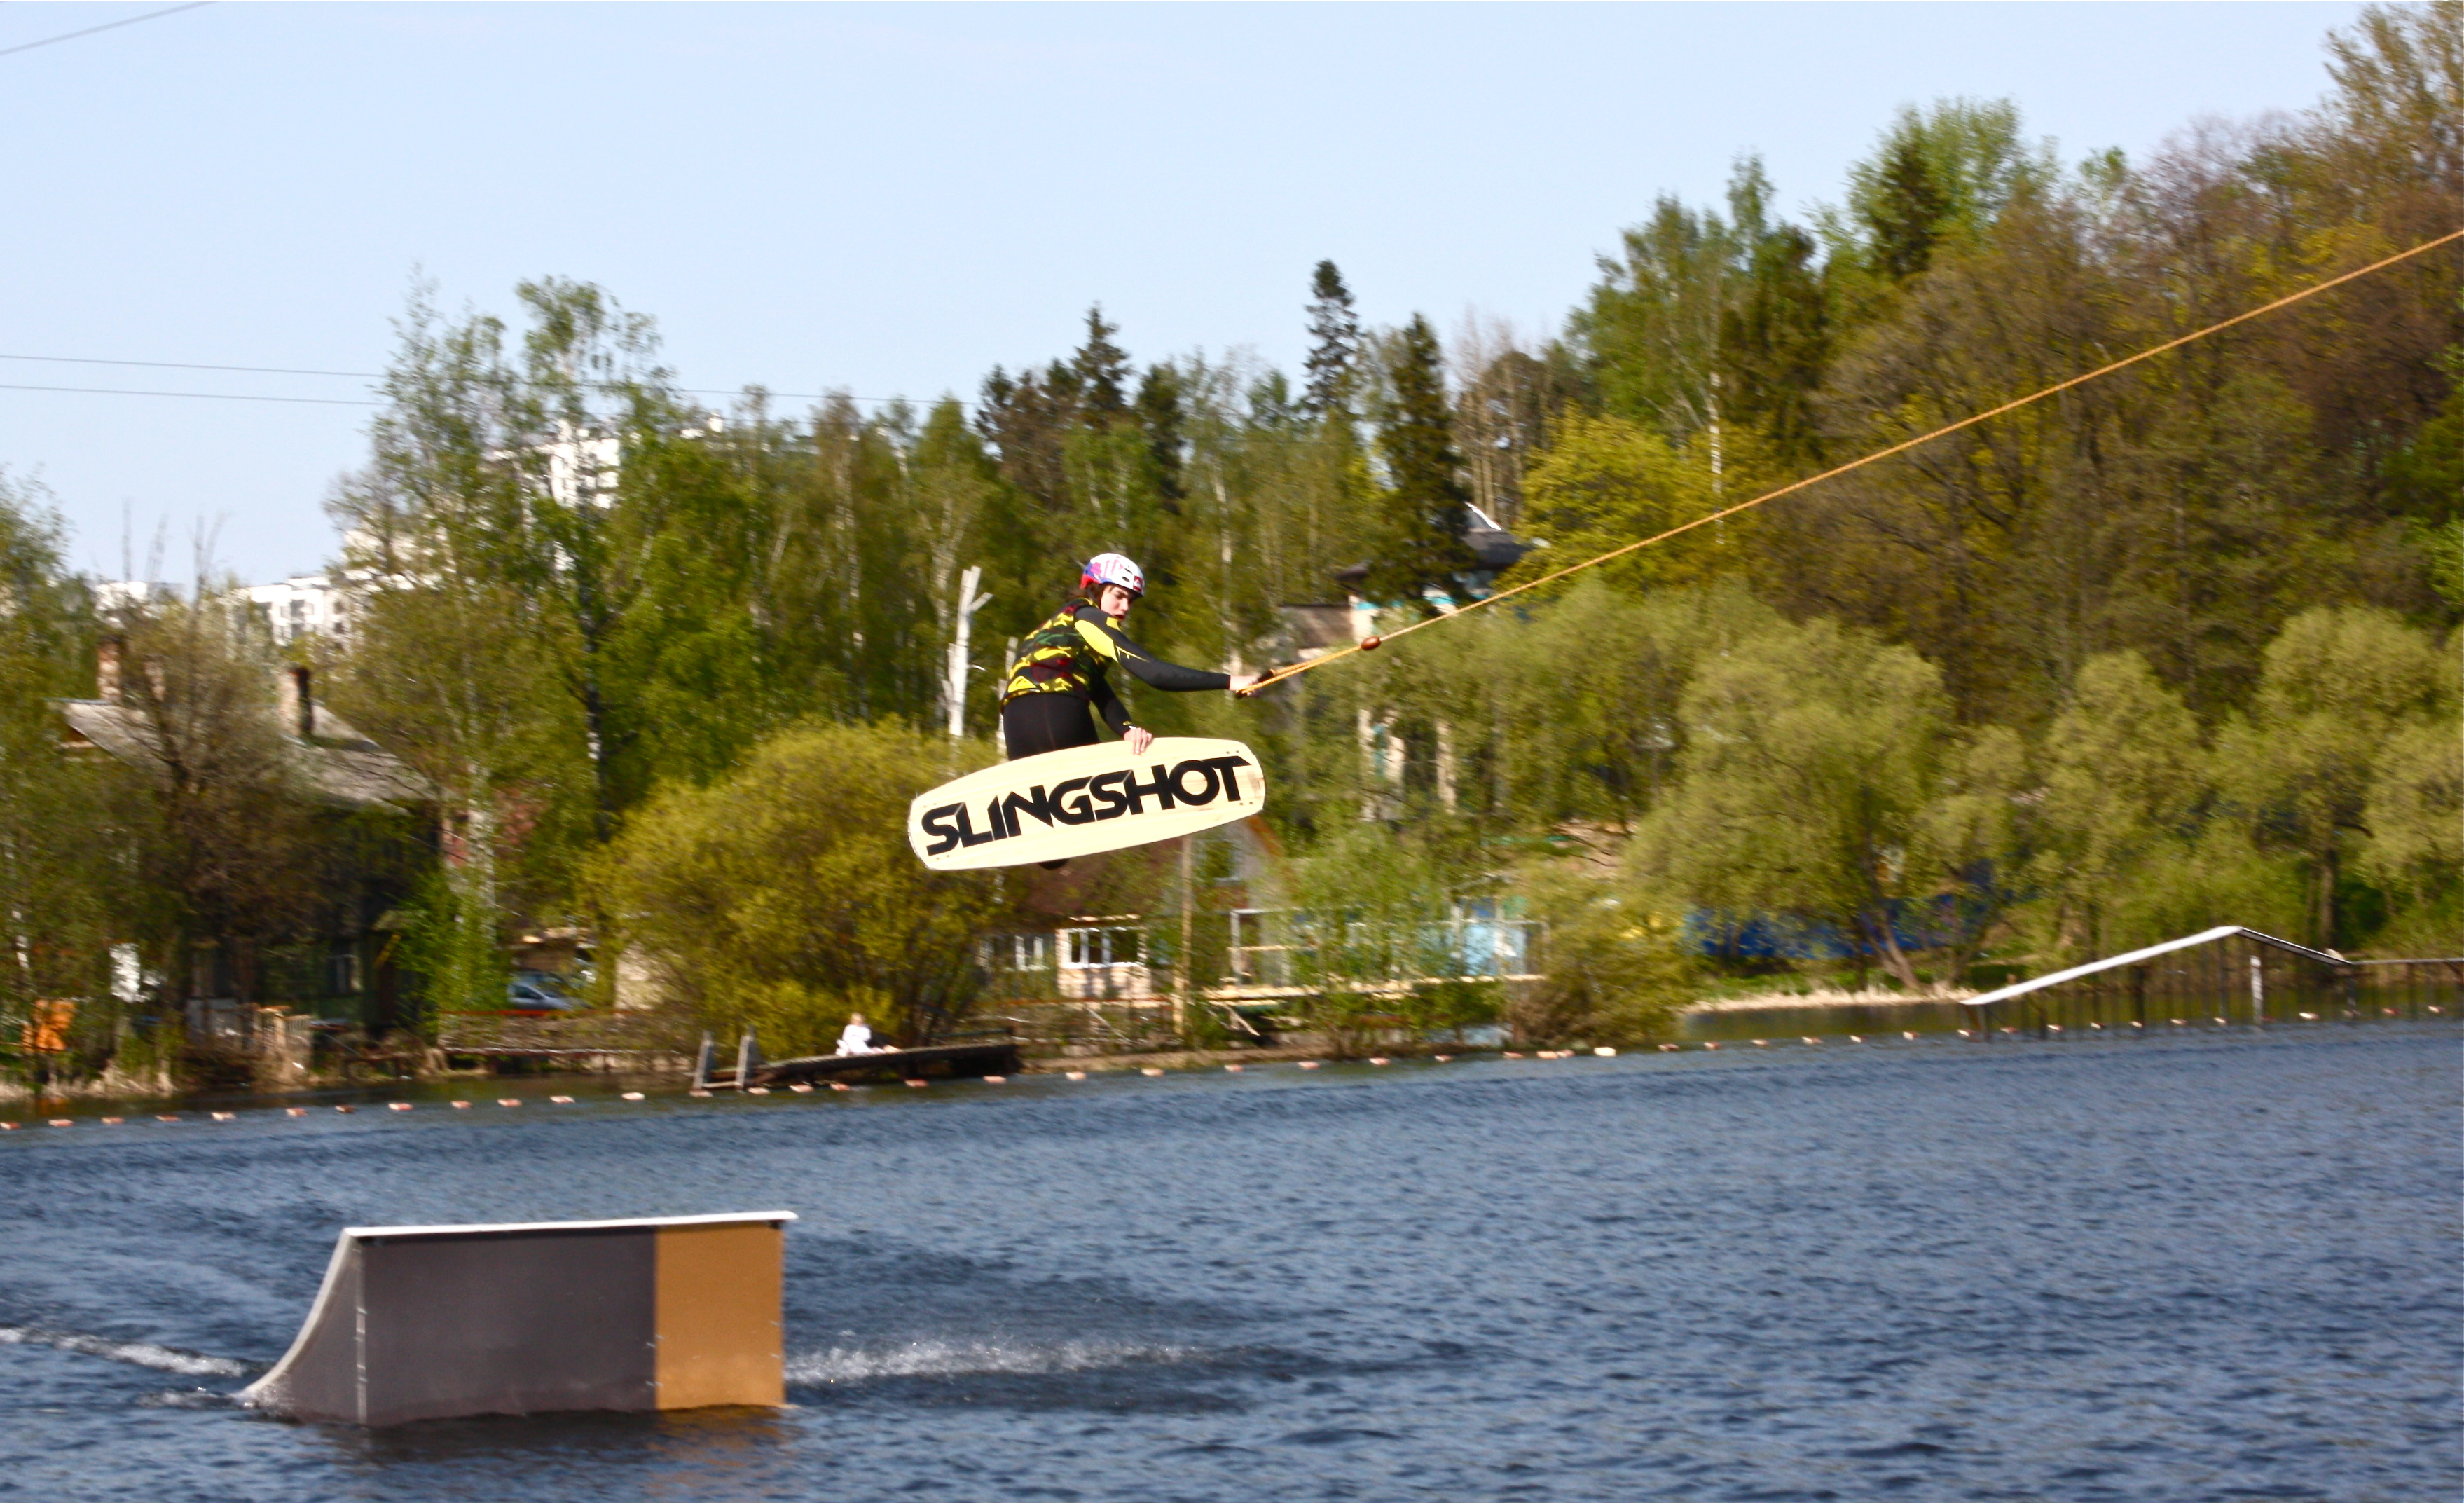 Slingshot_wake_tests_Adrenalin